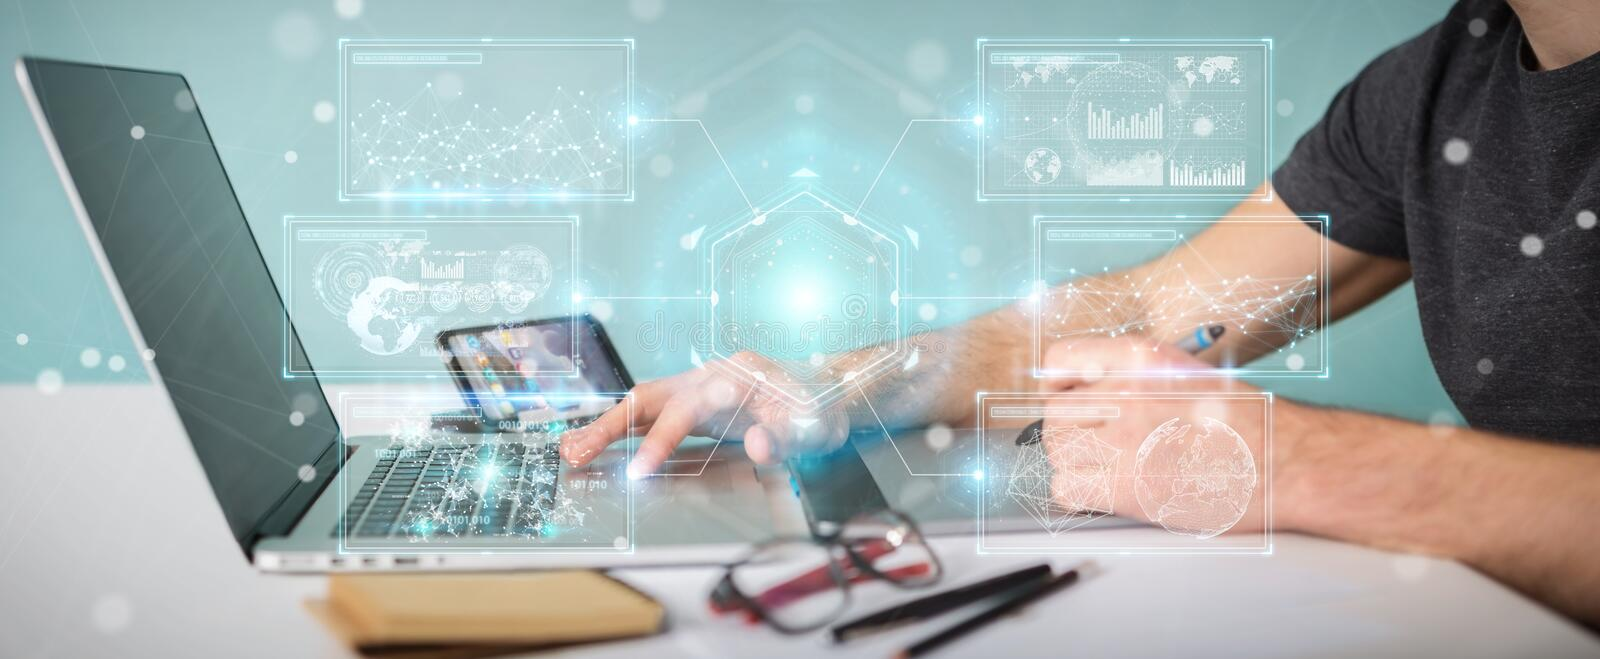 Graphic designer using digital screens interface with holograms stock illustration